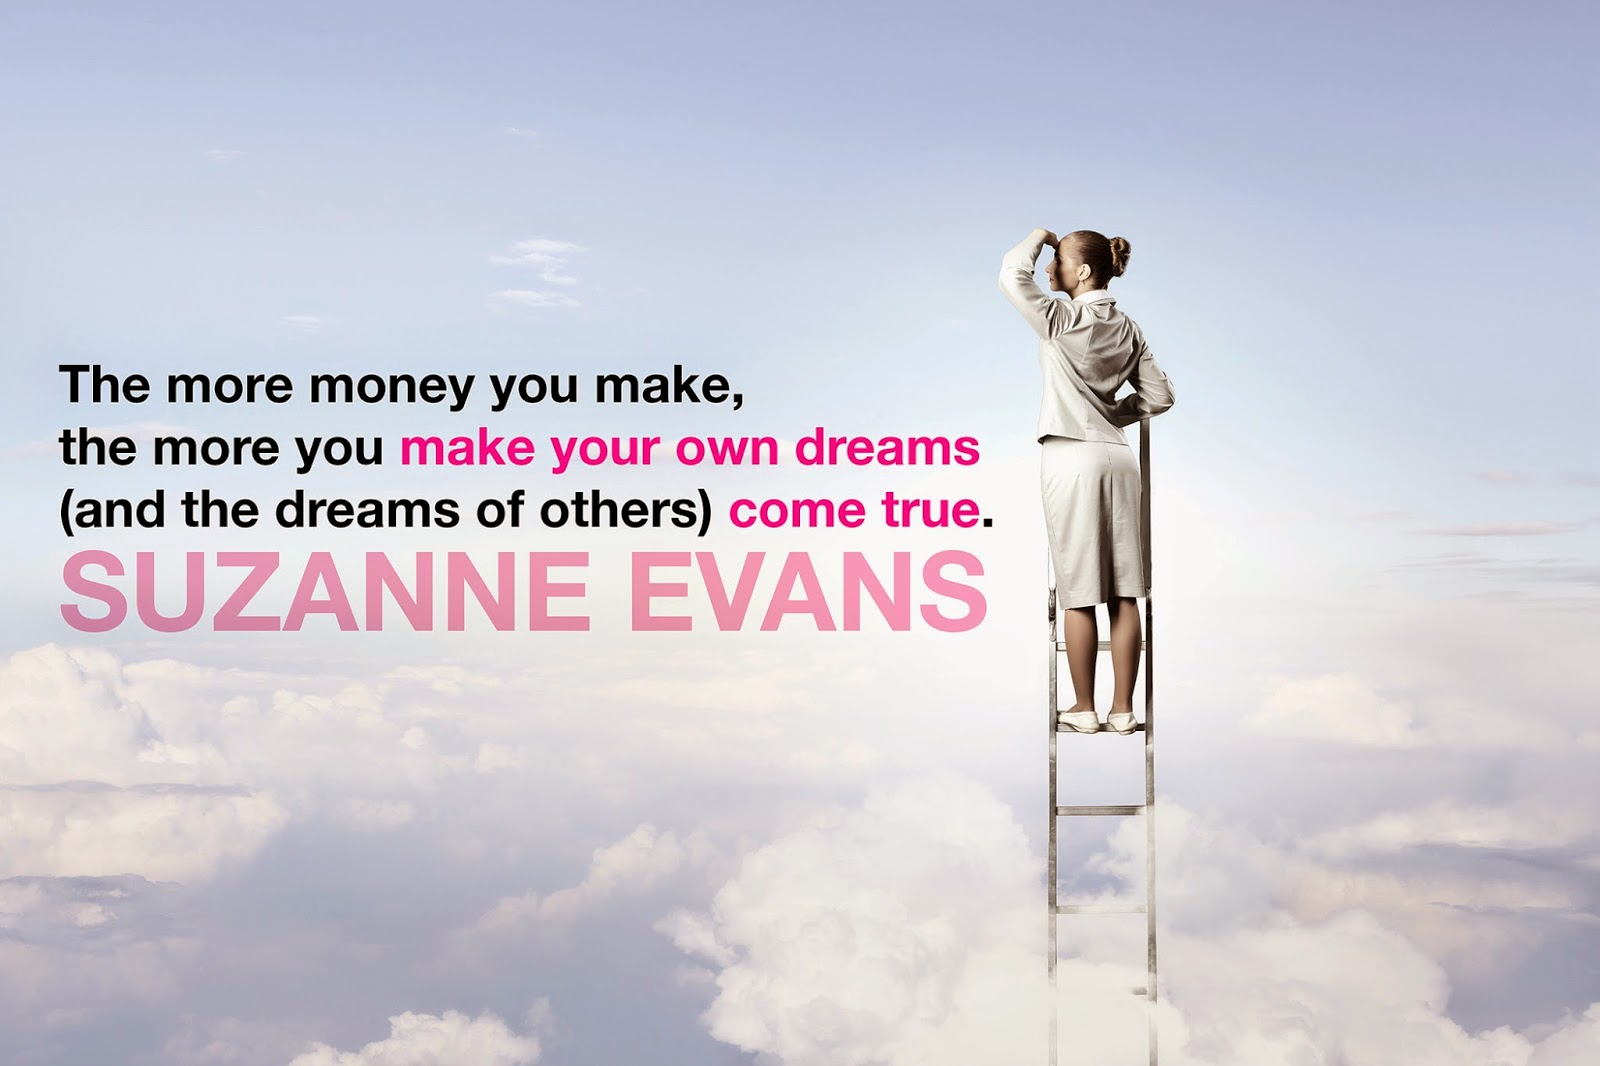 Success Builds, Suzanne Evans quote